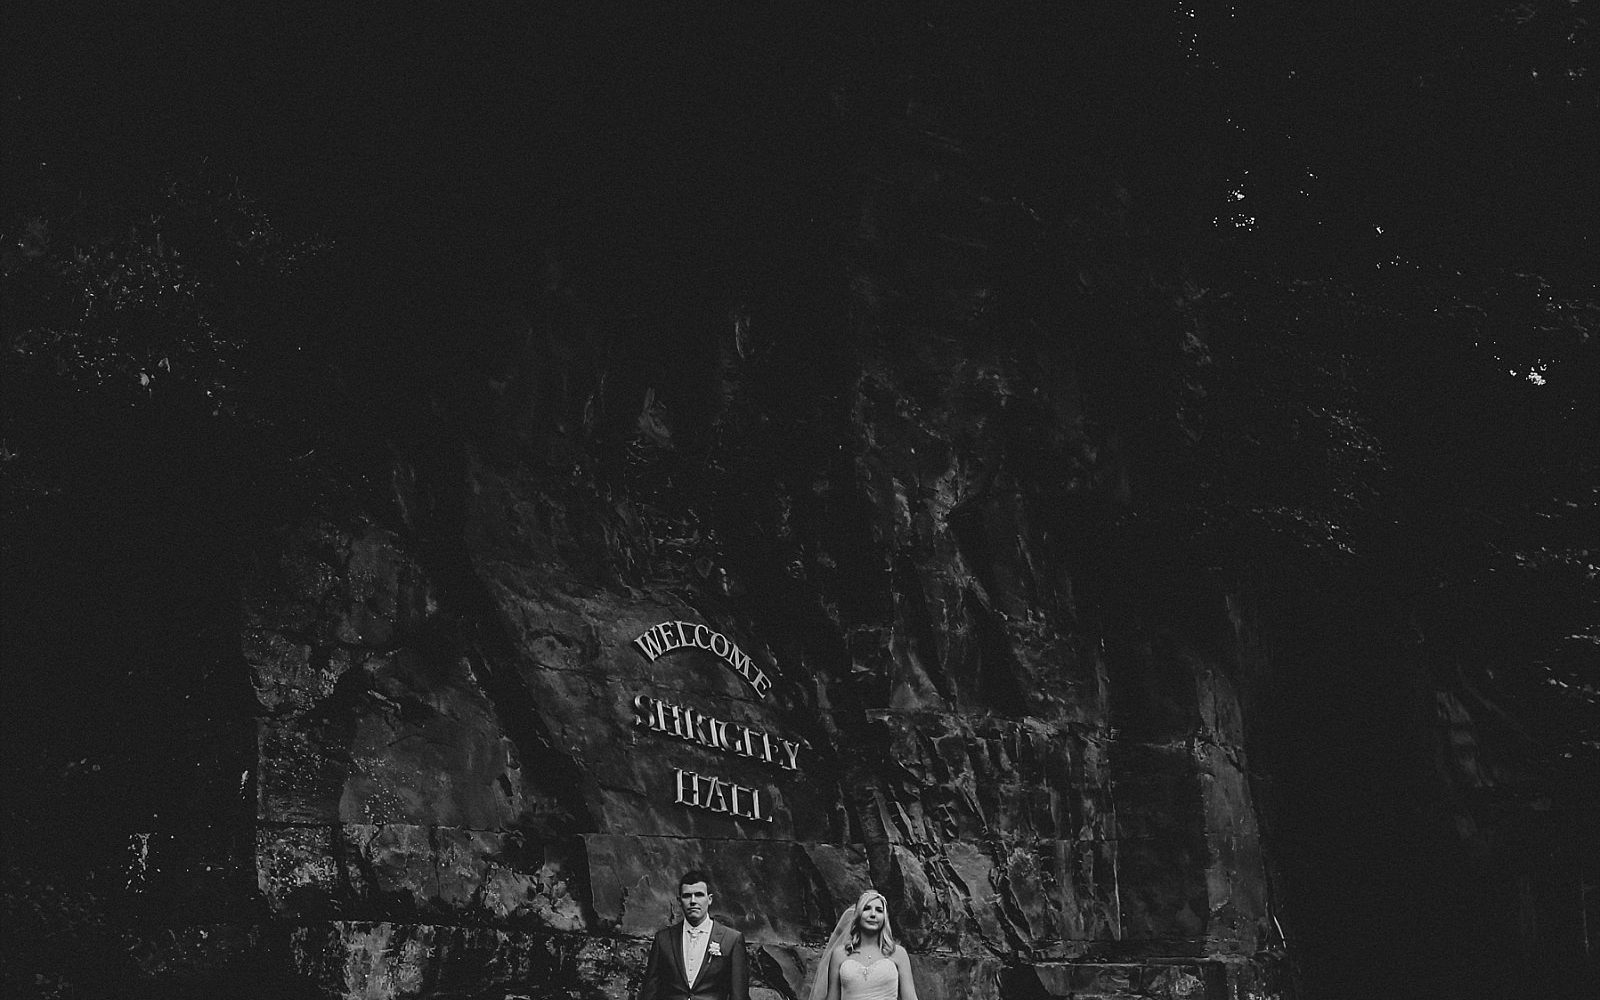 Shrigley hall wedding photography with rock face in the background